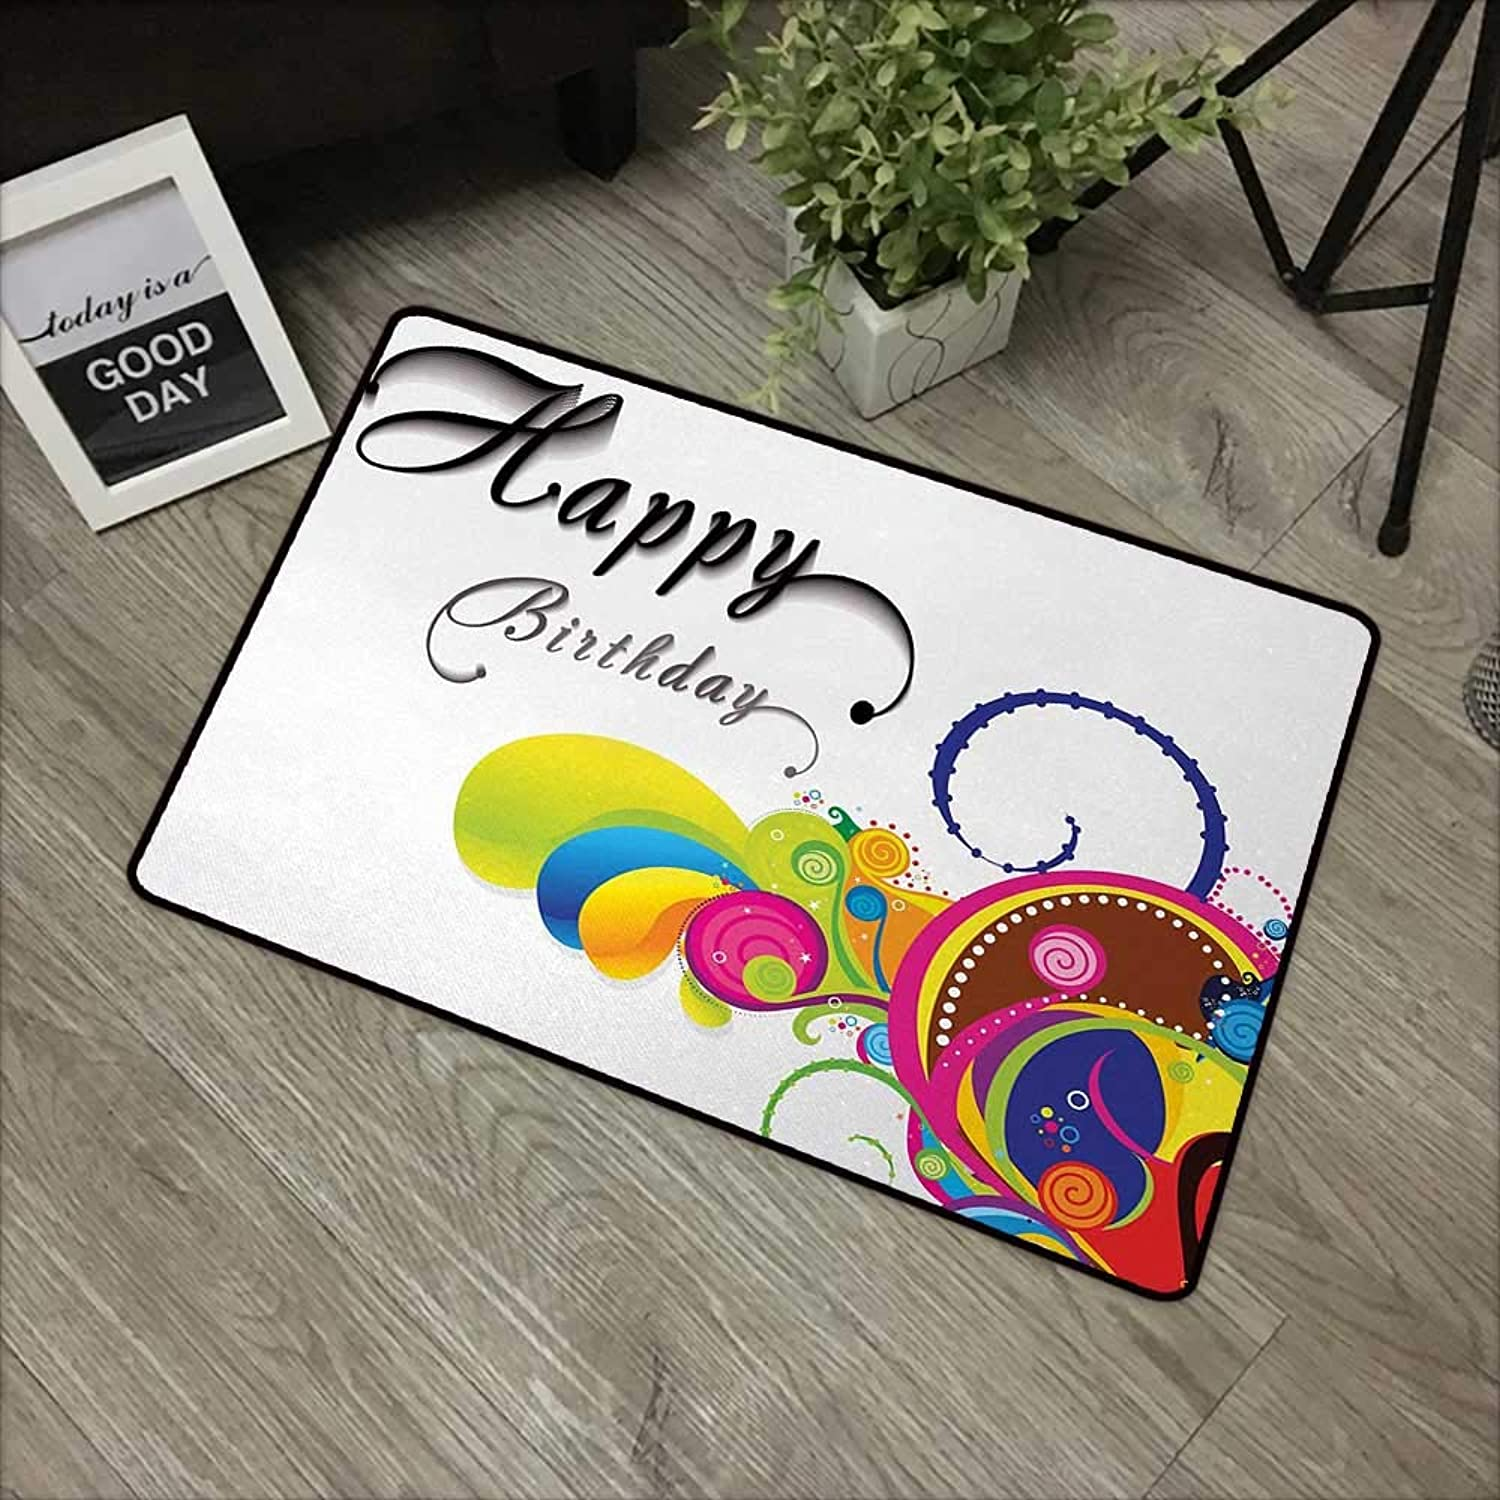 Interior Door mat W35 x L59 INCH Birthday,Spiral colorful Abstract Floral Elements Modern Greeting Card Celebration Inspired,Multicolor Non-Slip Door Mat Carpet